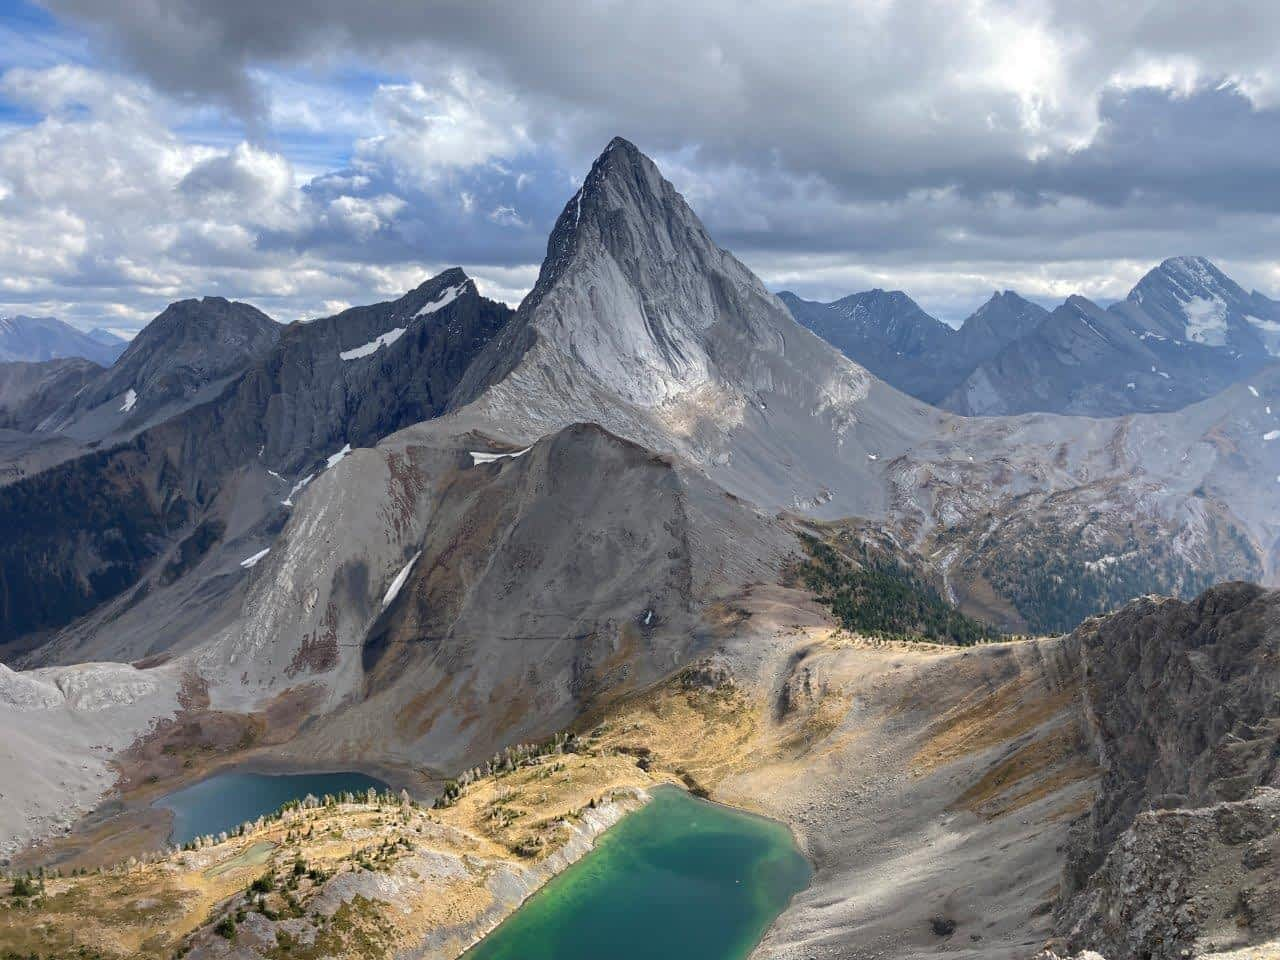 Two green lakes and a sharply peaked mountain on the Smutwood Peak hike, one of the best hikes Canmore